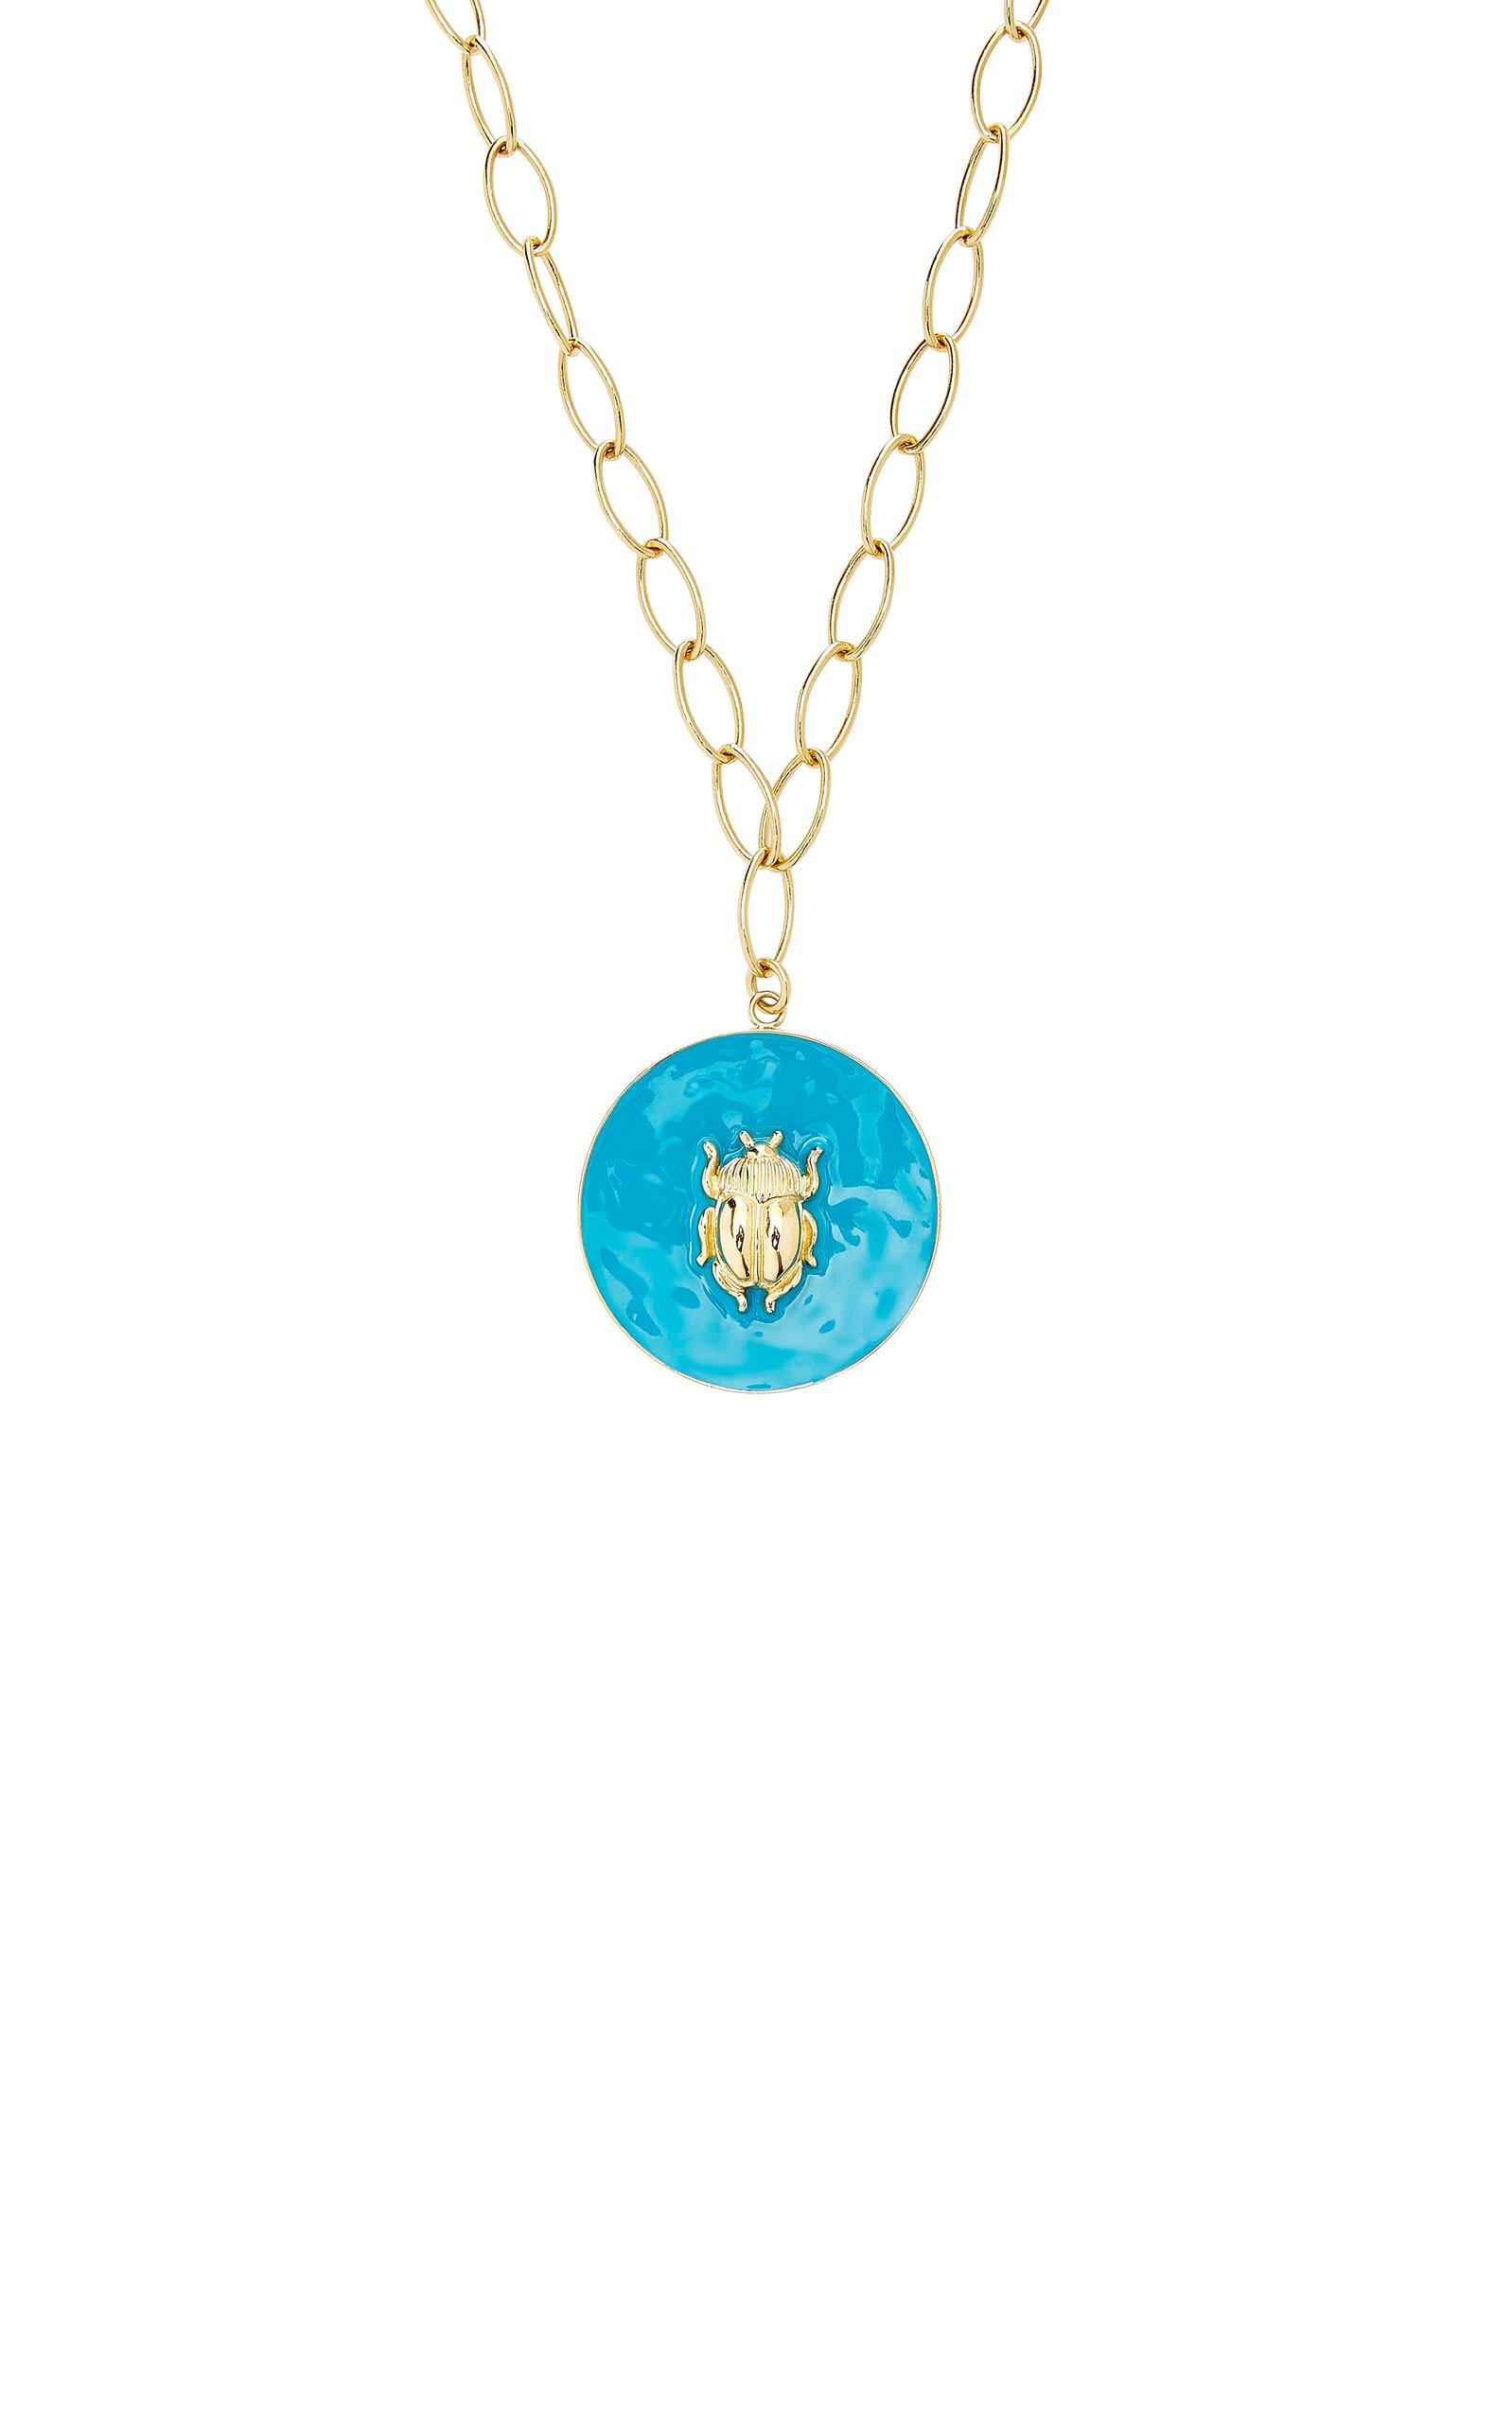 Elvira Scarab Pendant Necklace in Blue Enamel and 18K Gold-Plated Brass Aur 6QvMo